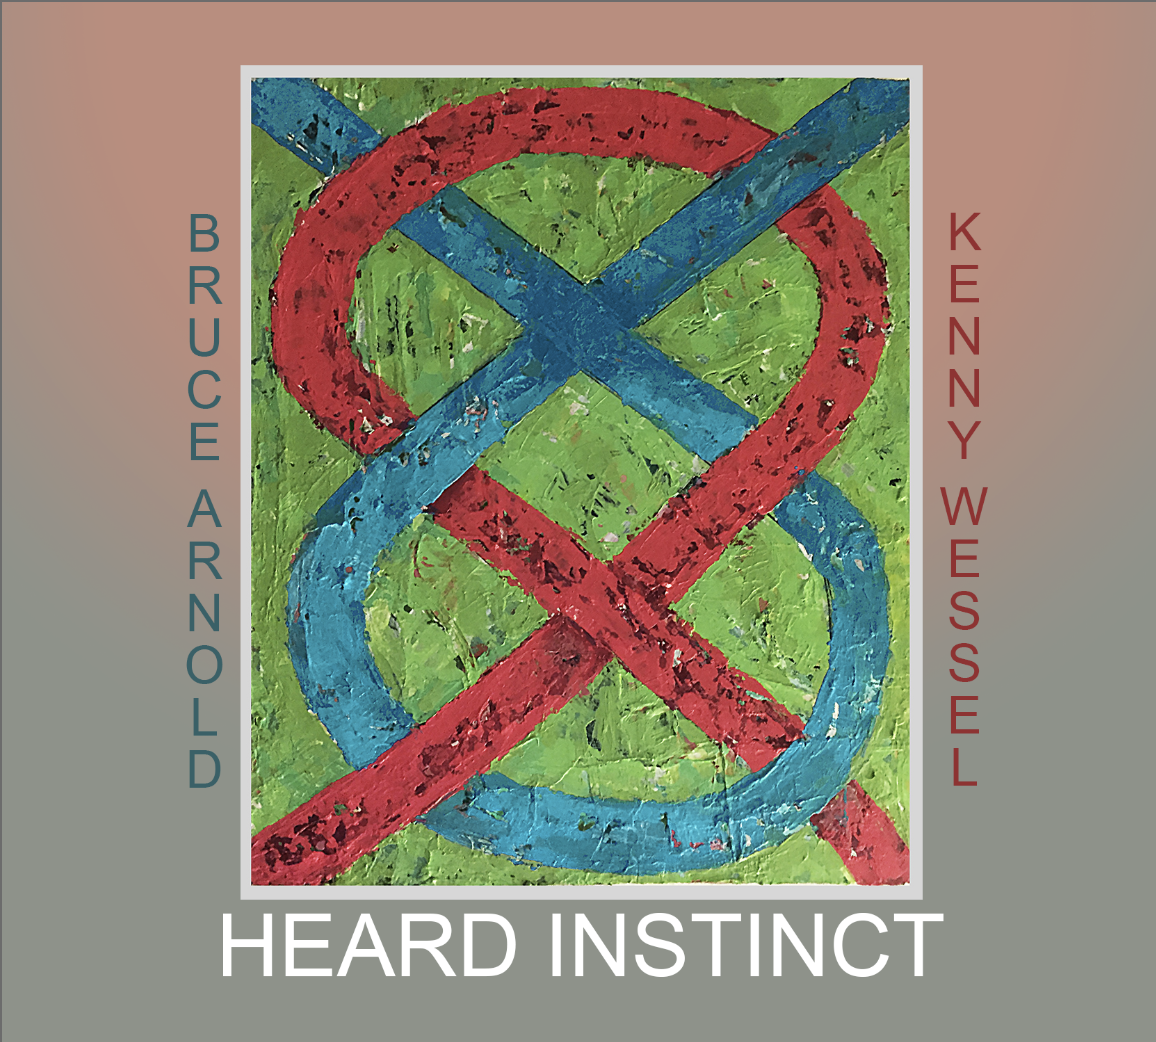 Heard Instinct CD by Kenny Wessel and Bruce Arnold